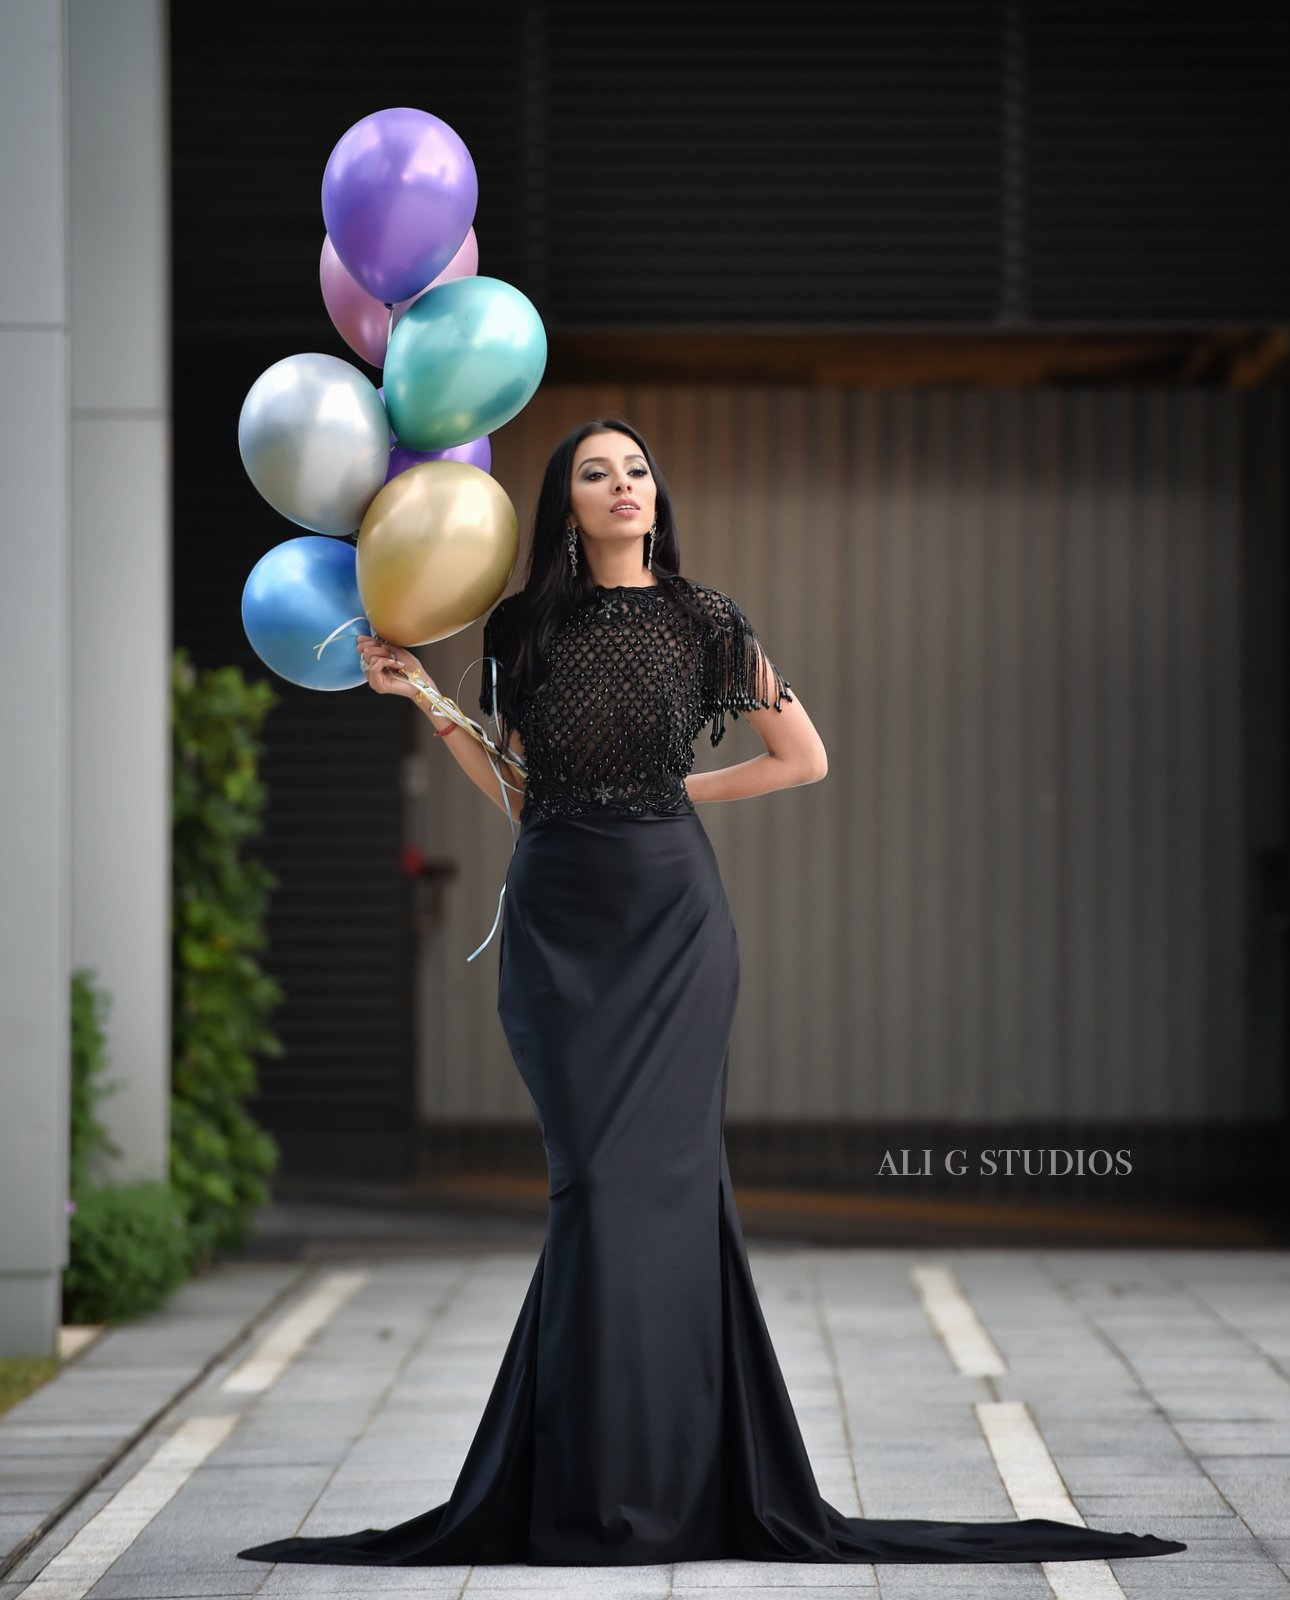 Editorial fashion shot of Payal Shah in a black dress holding balloons